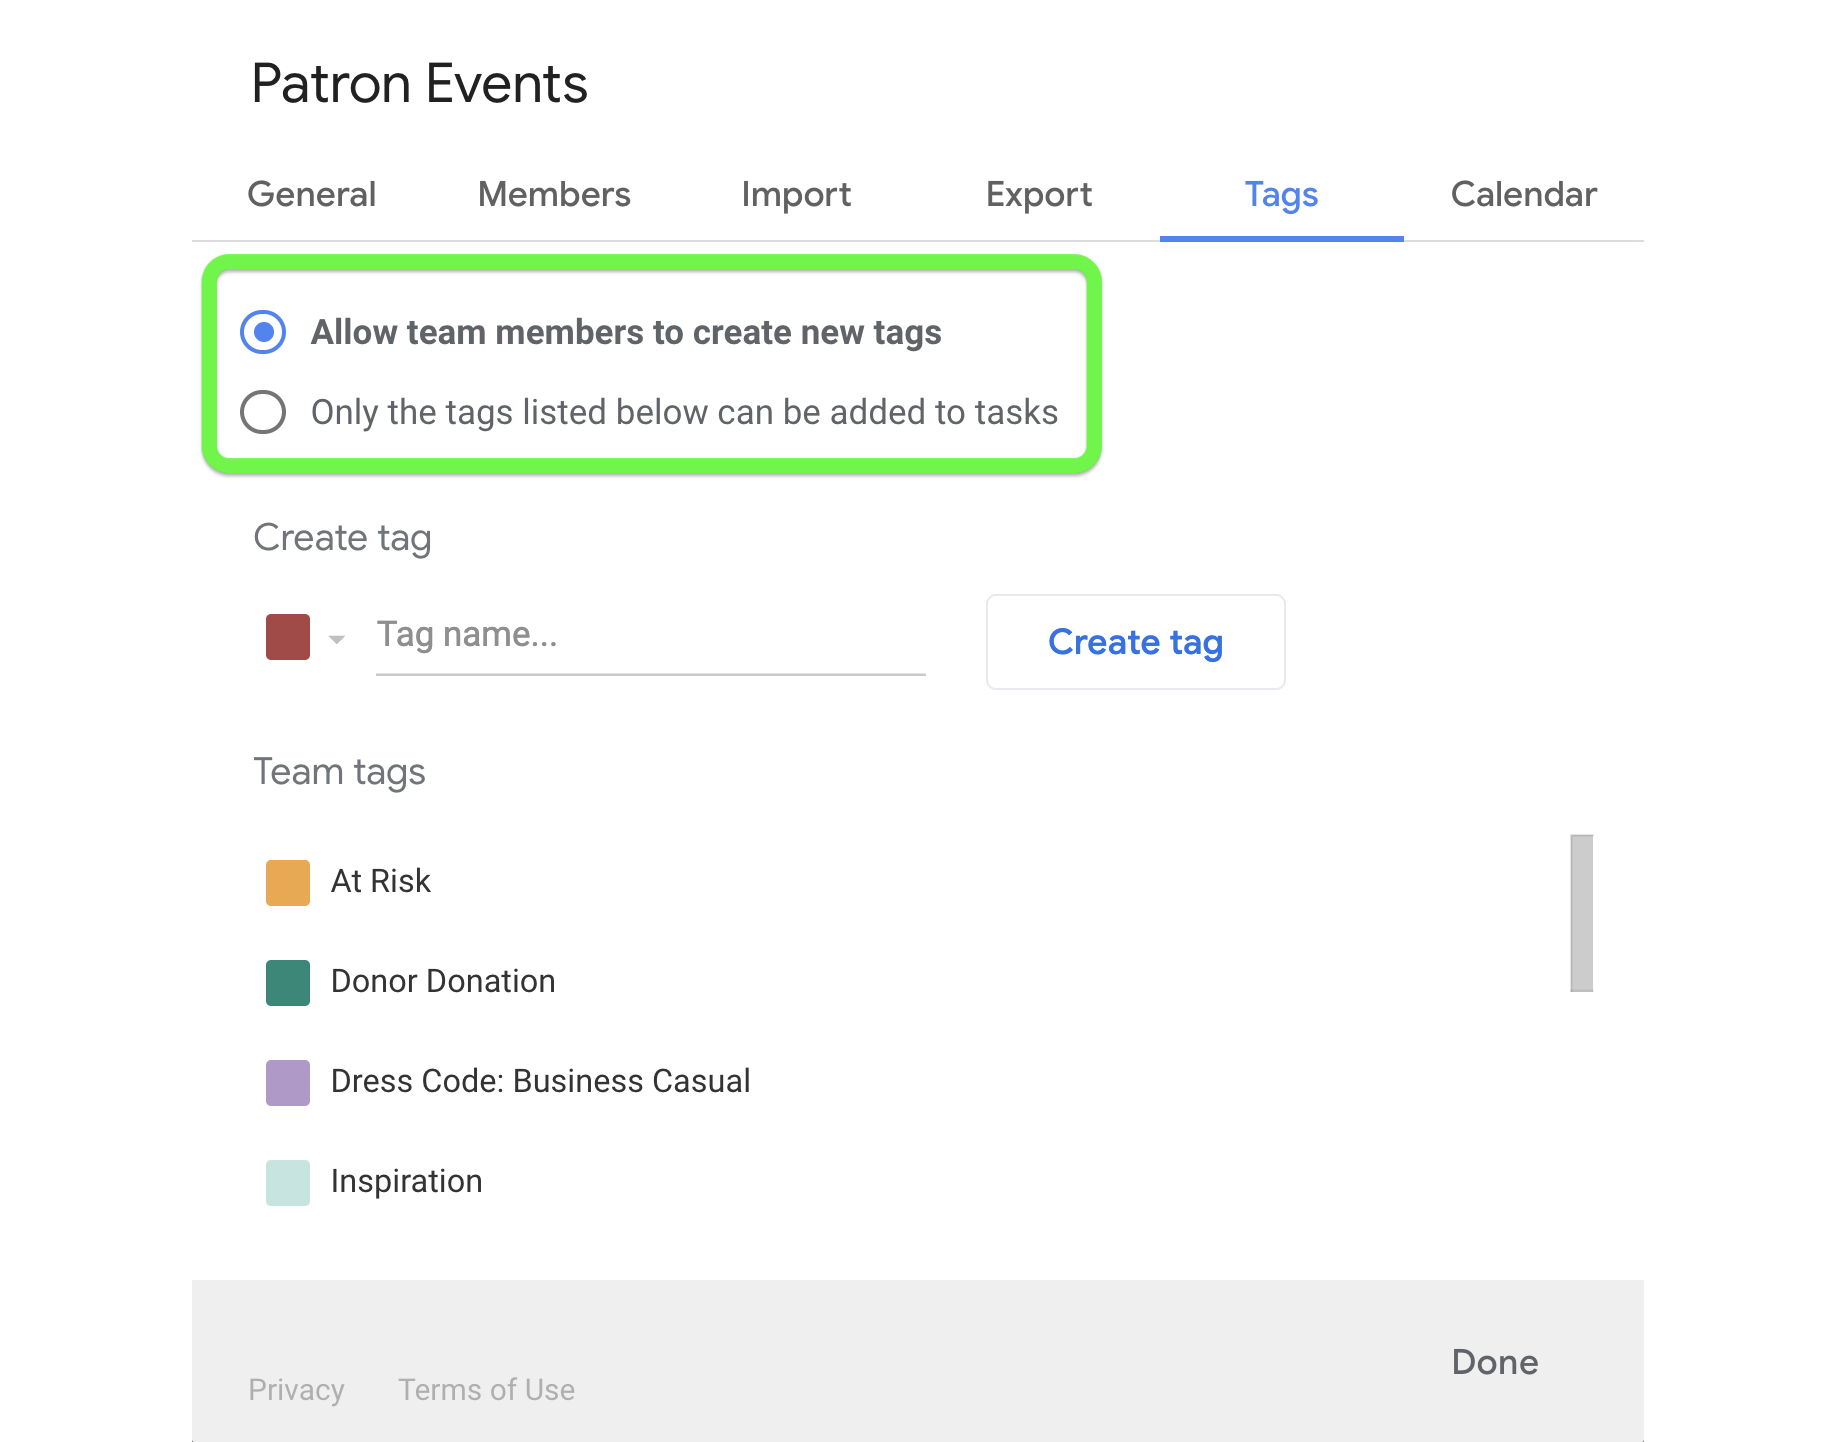 Setting to allow team members to create new tags